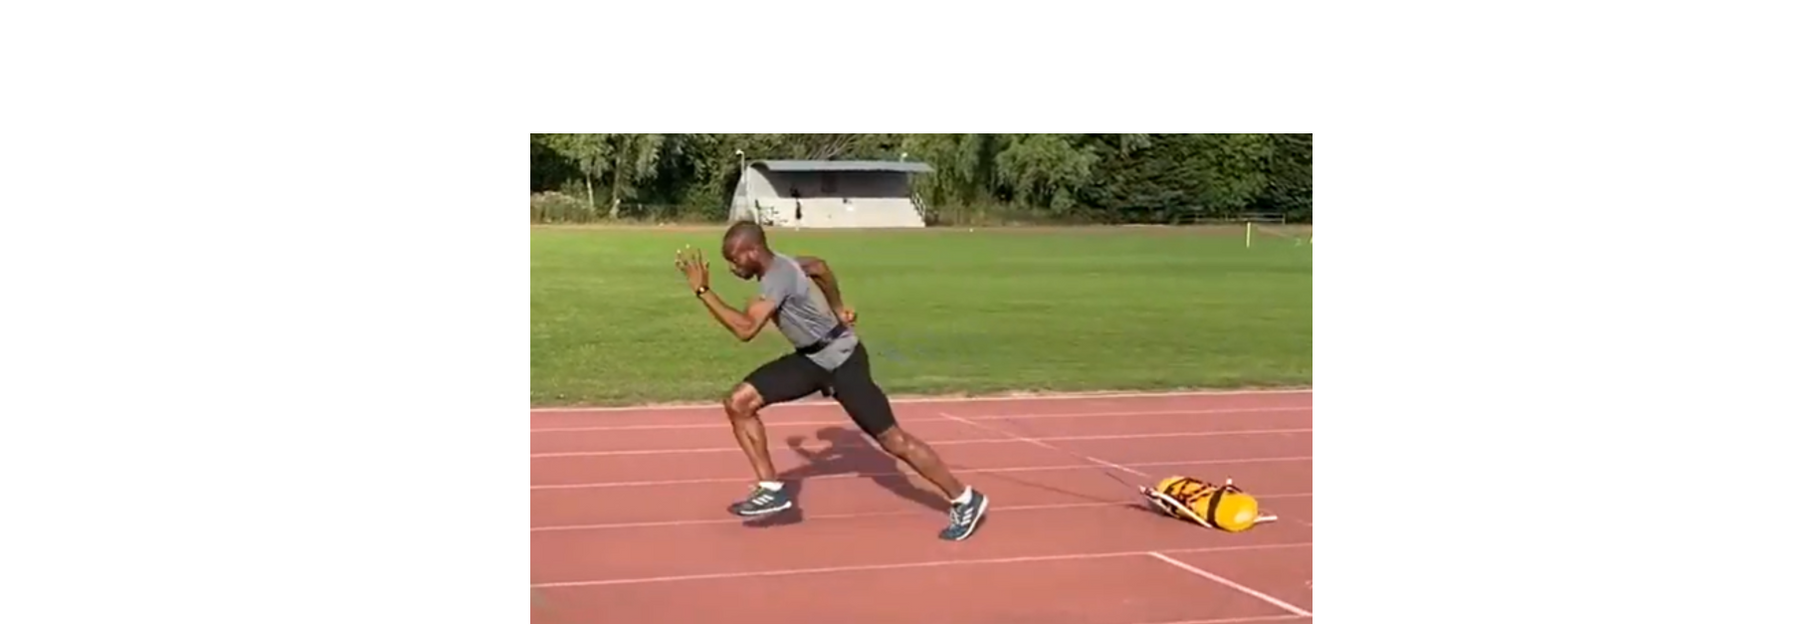 Athlete practicing acceleration drills with a power sledge resistance harness